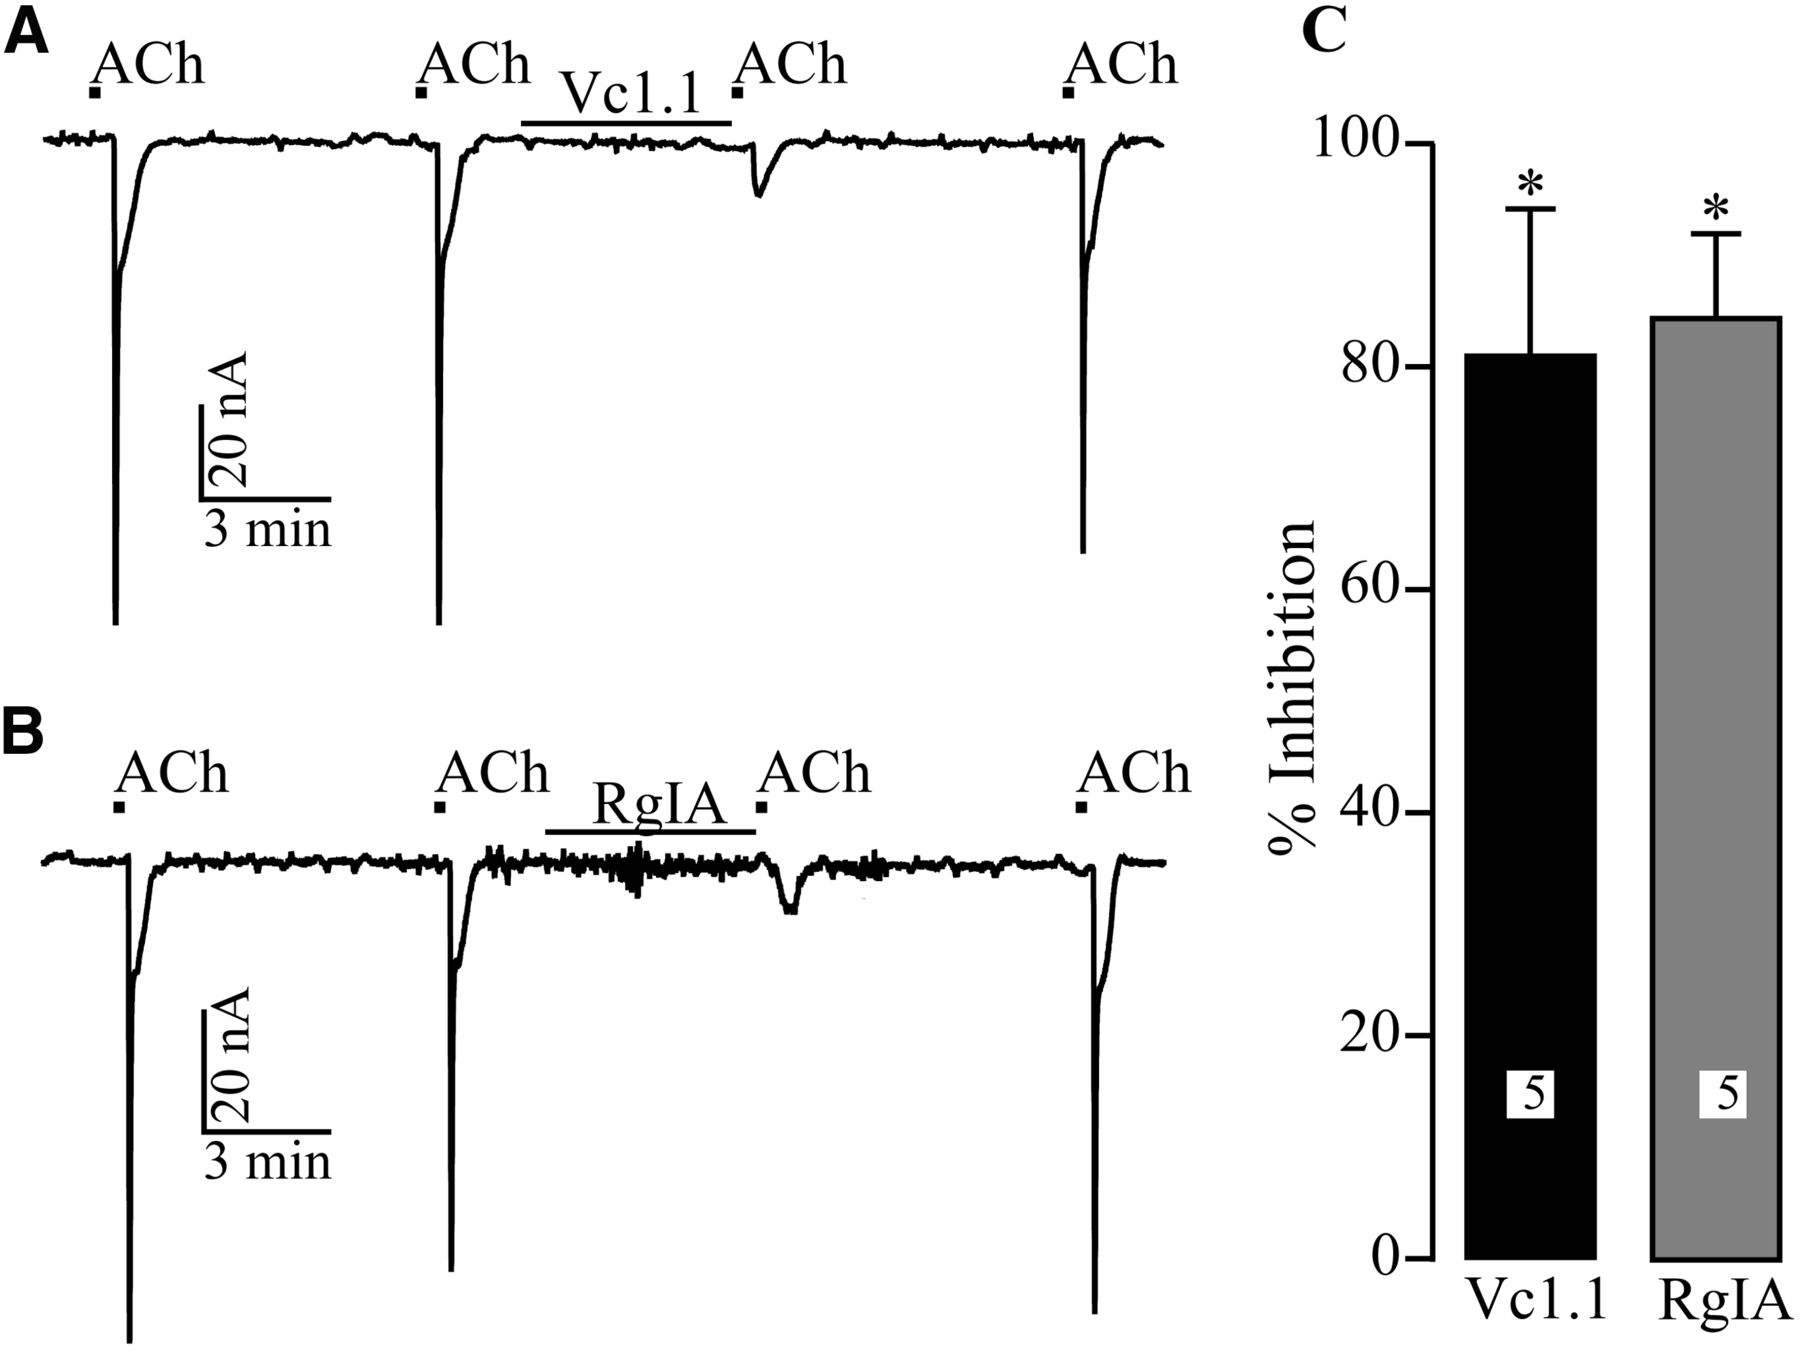 Limited Efficacy Of Conopeptides Vc11 And Rgia To Inhibit Pentium 1 Block Diagram Download Figure